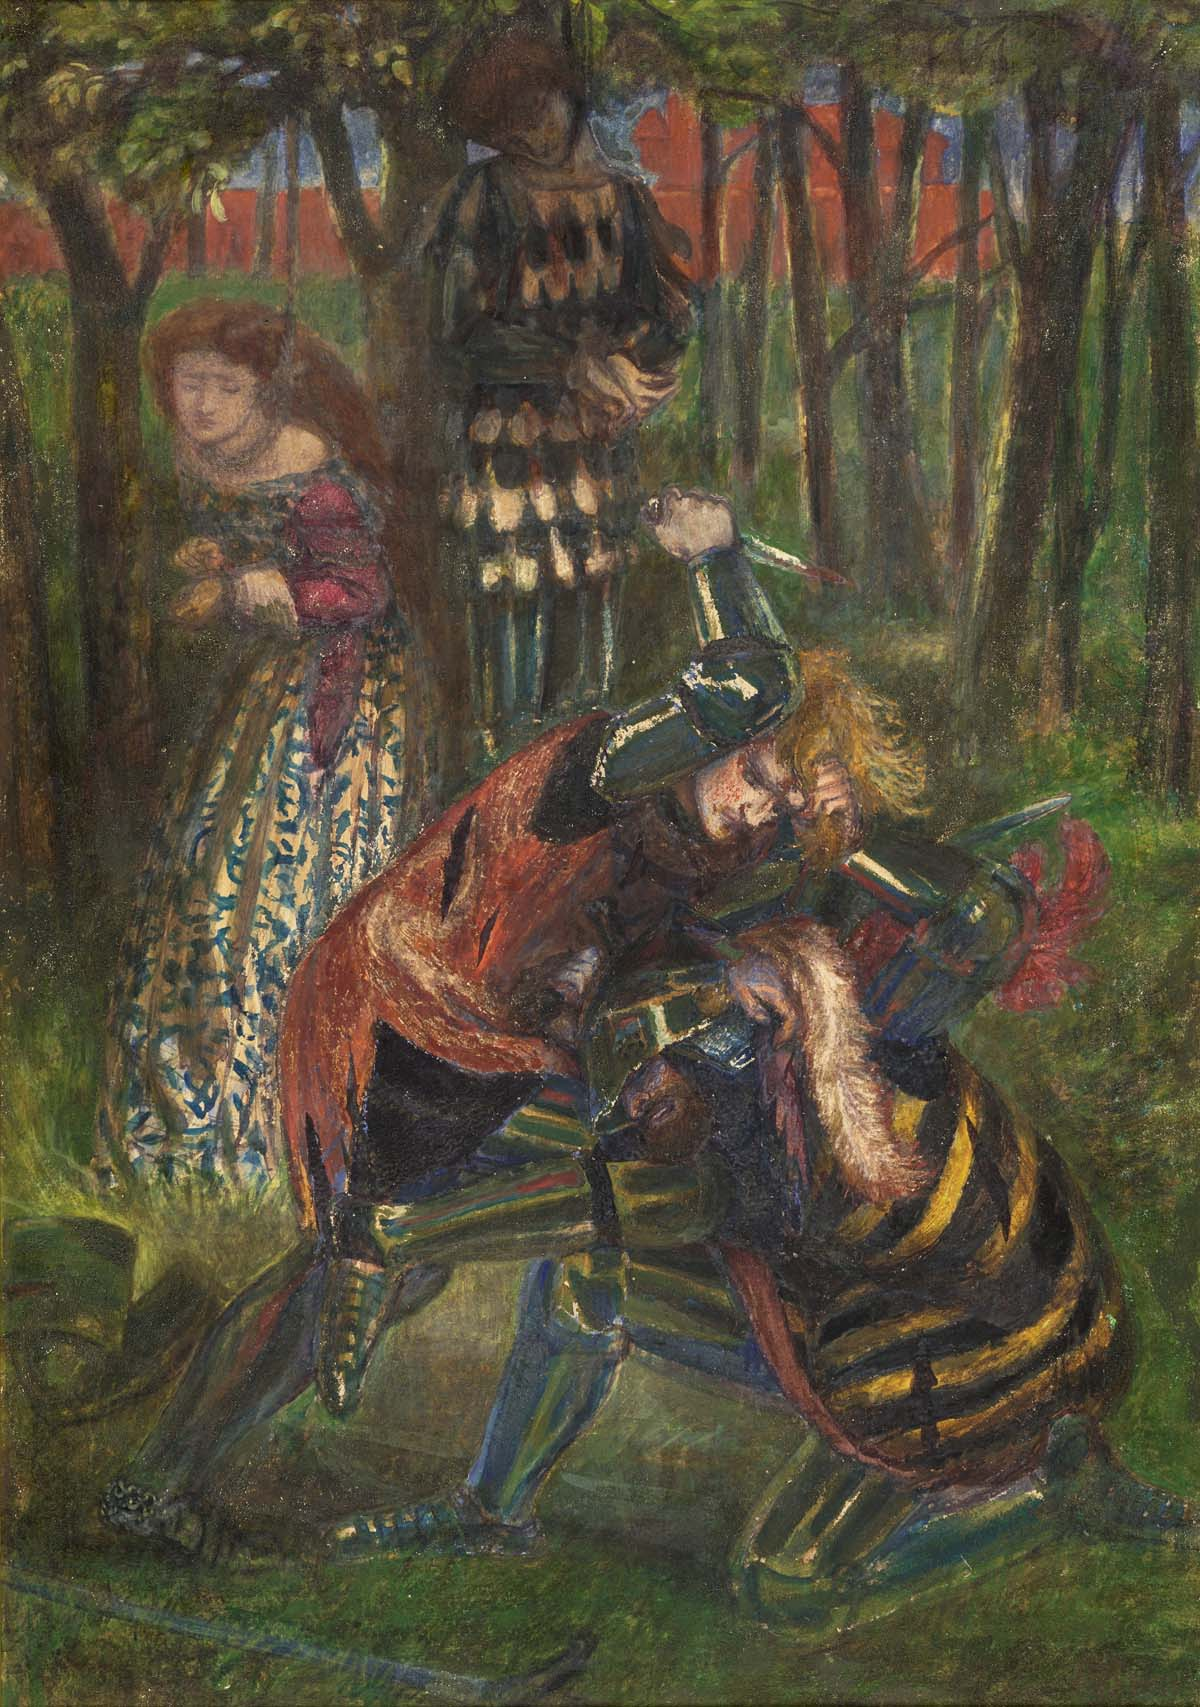 a colur drawing of two medieval knights fighting as a damsel looks on from a nearby tree